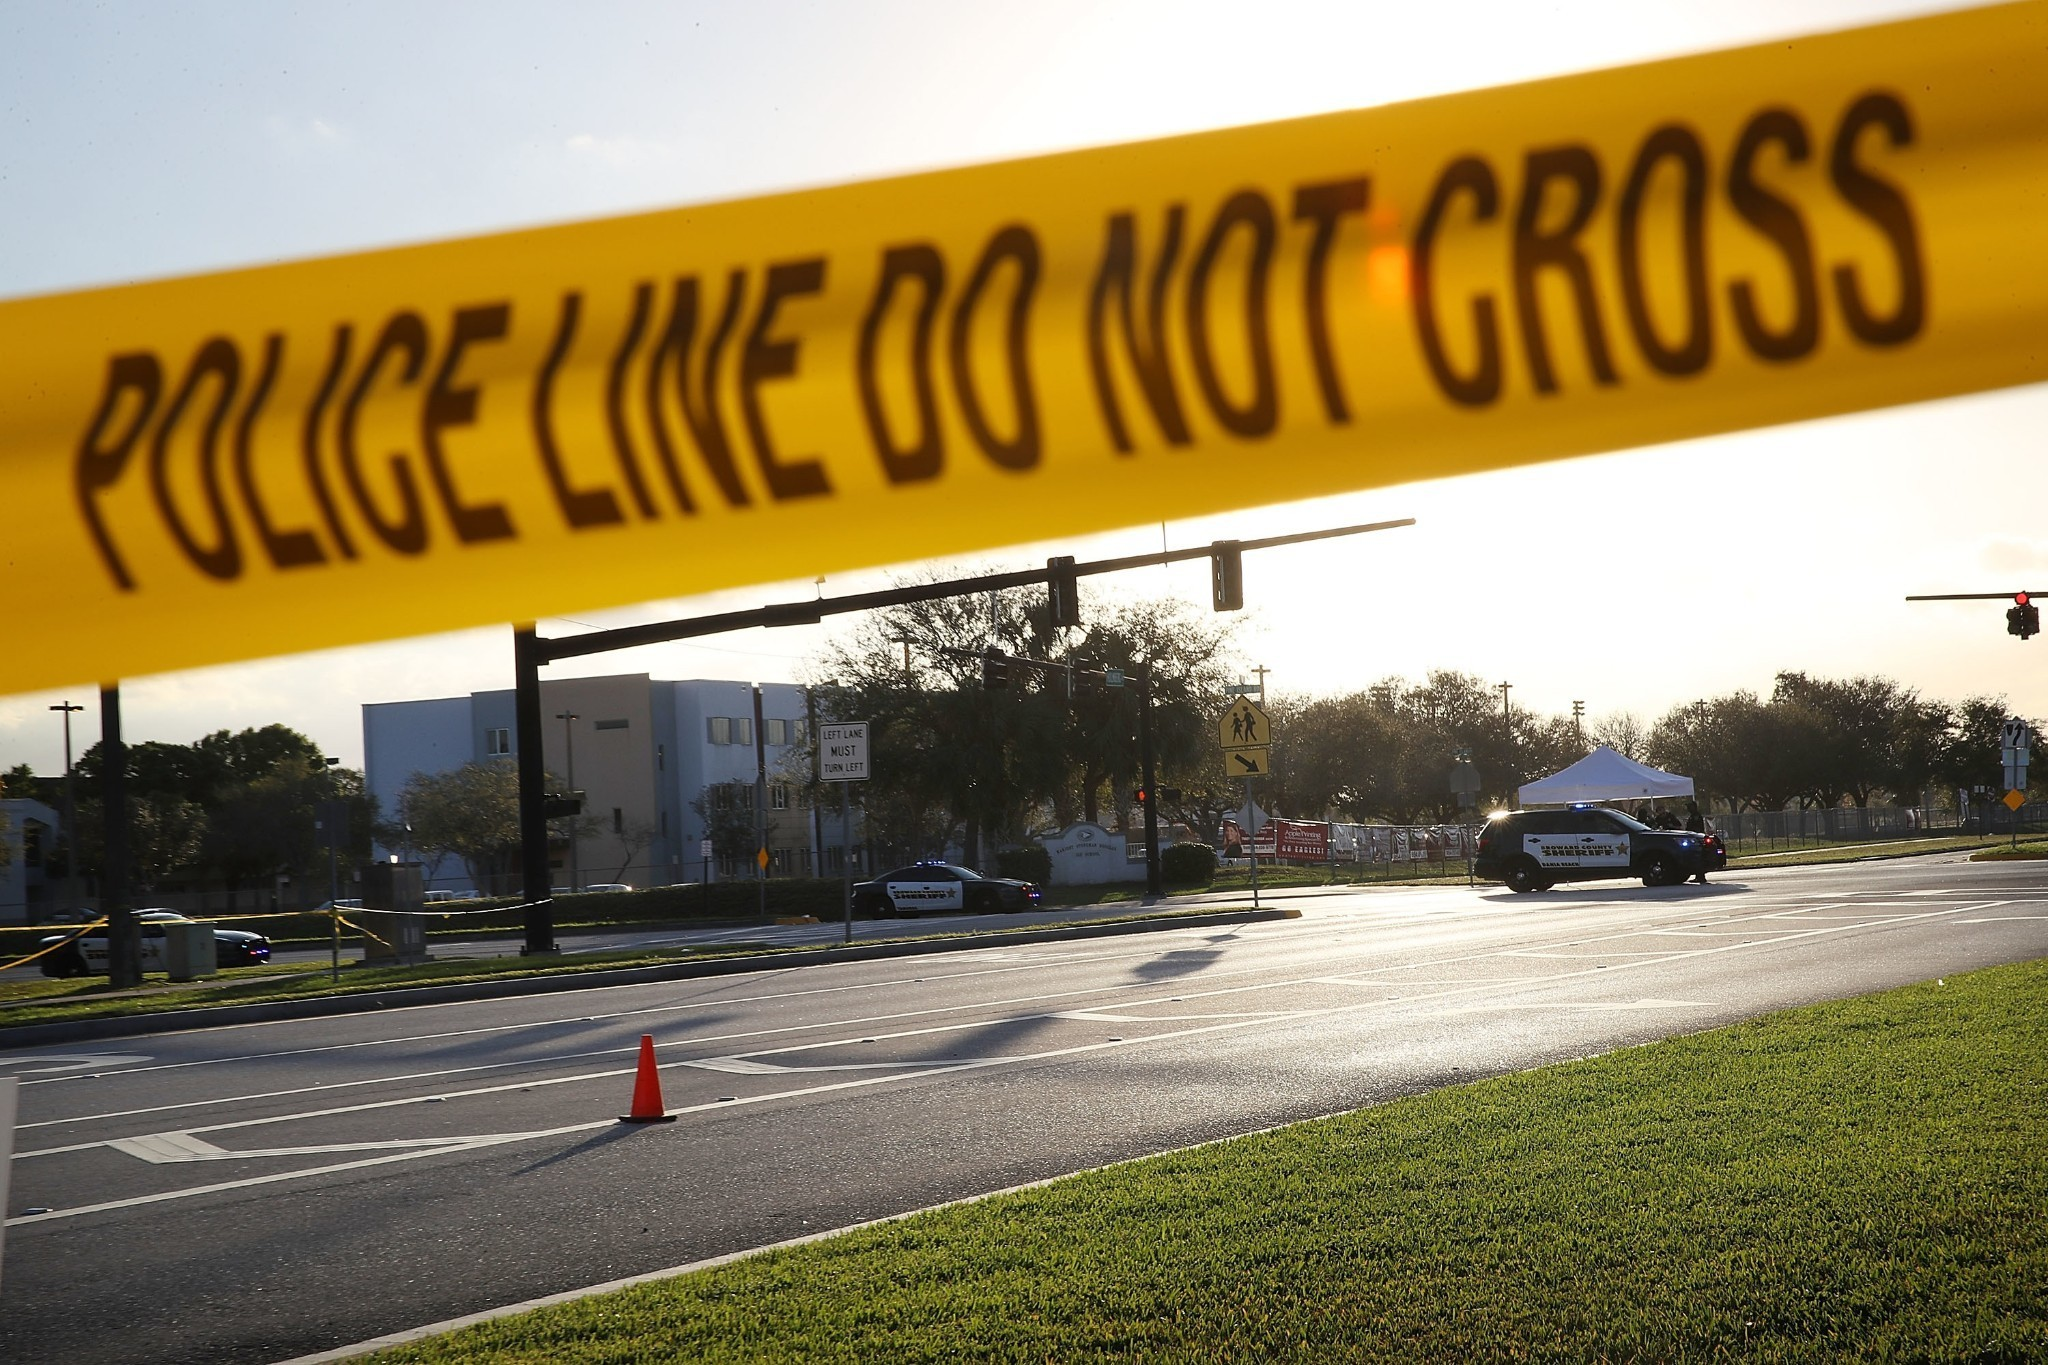 Multiple armed officers hung back during Florida school shooting, reports say